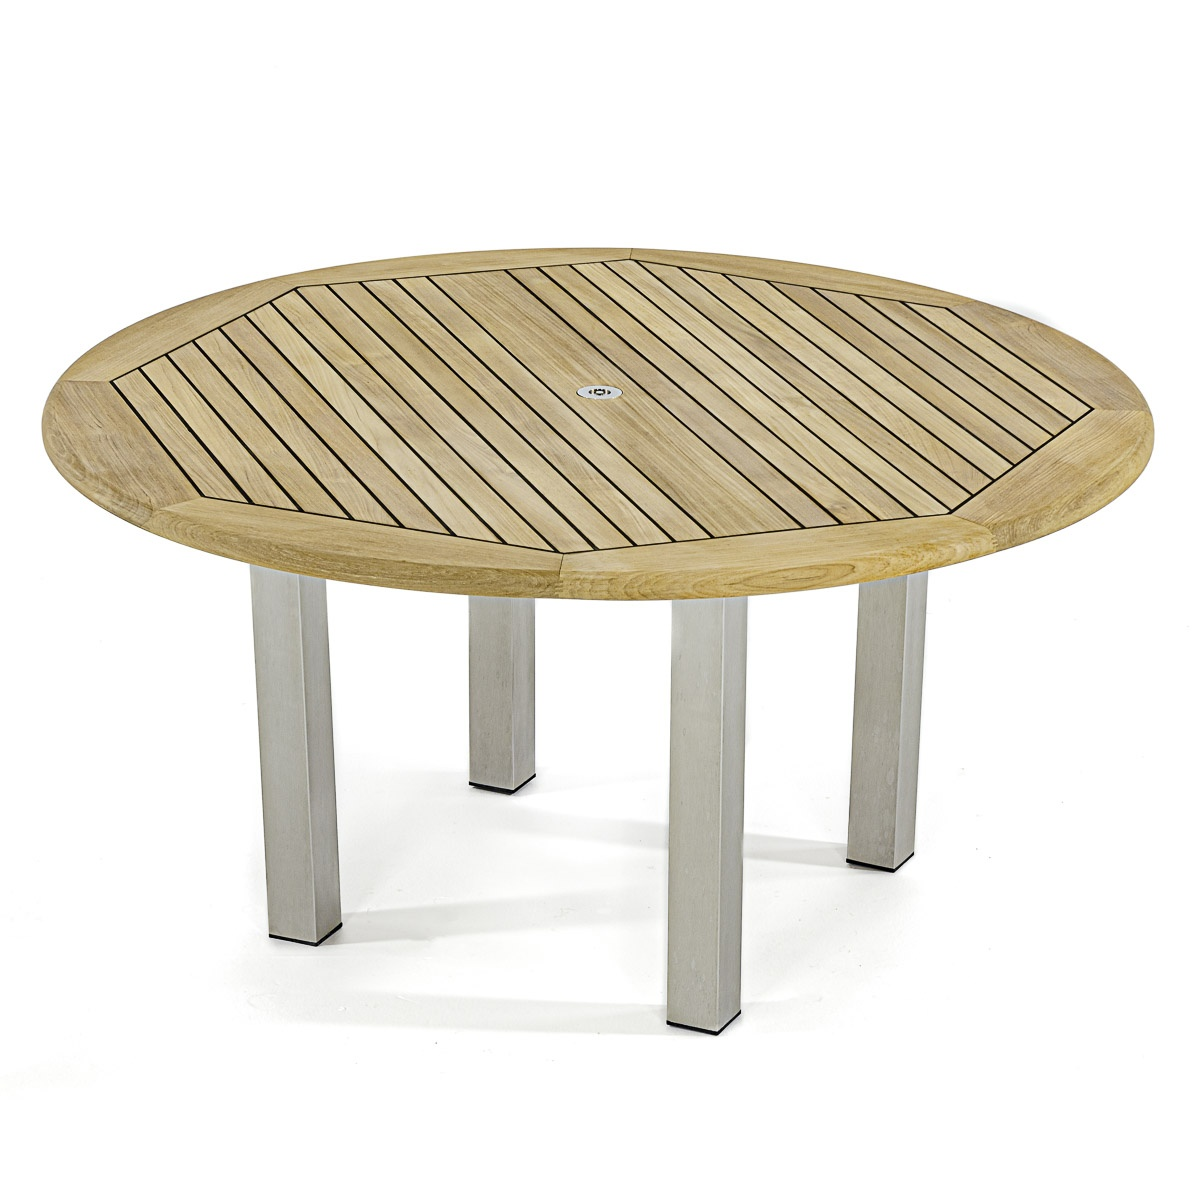 Vogue Ft Diameter Teak And Stainless Steel Round Westminster Teak - 5 ft stainless steel table